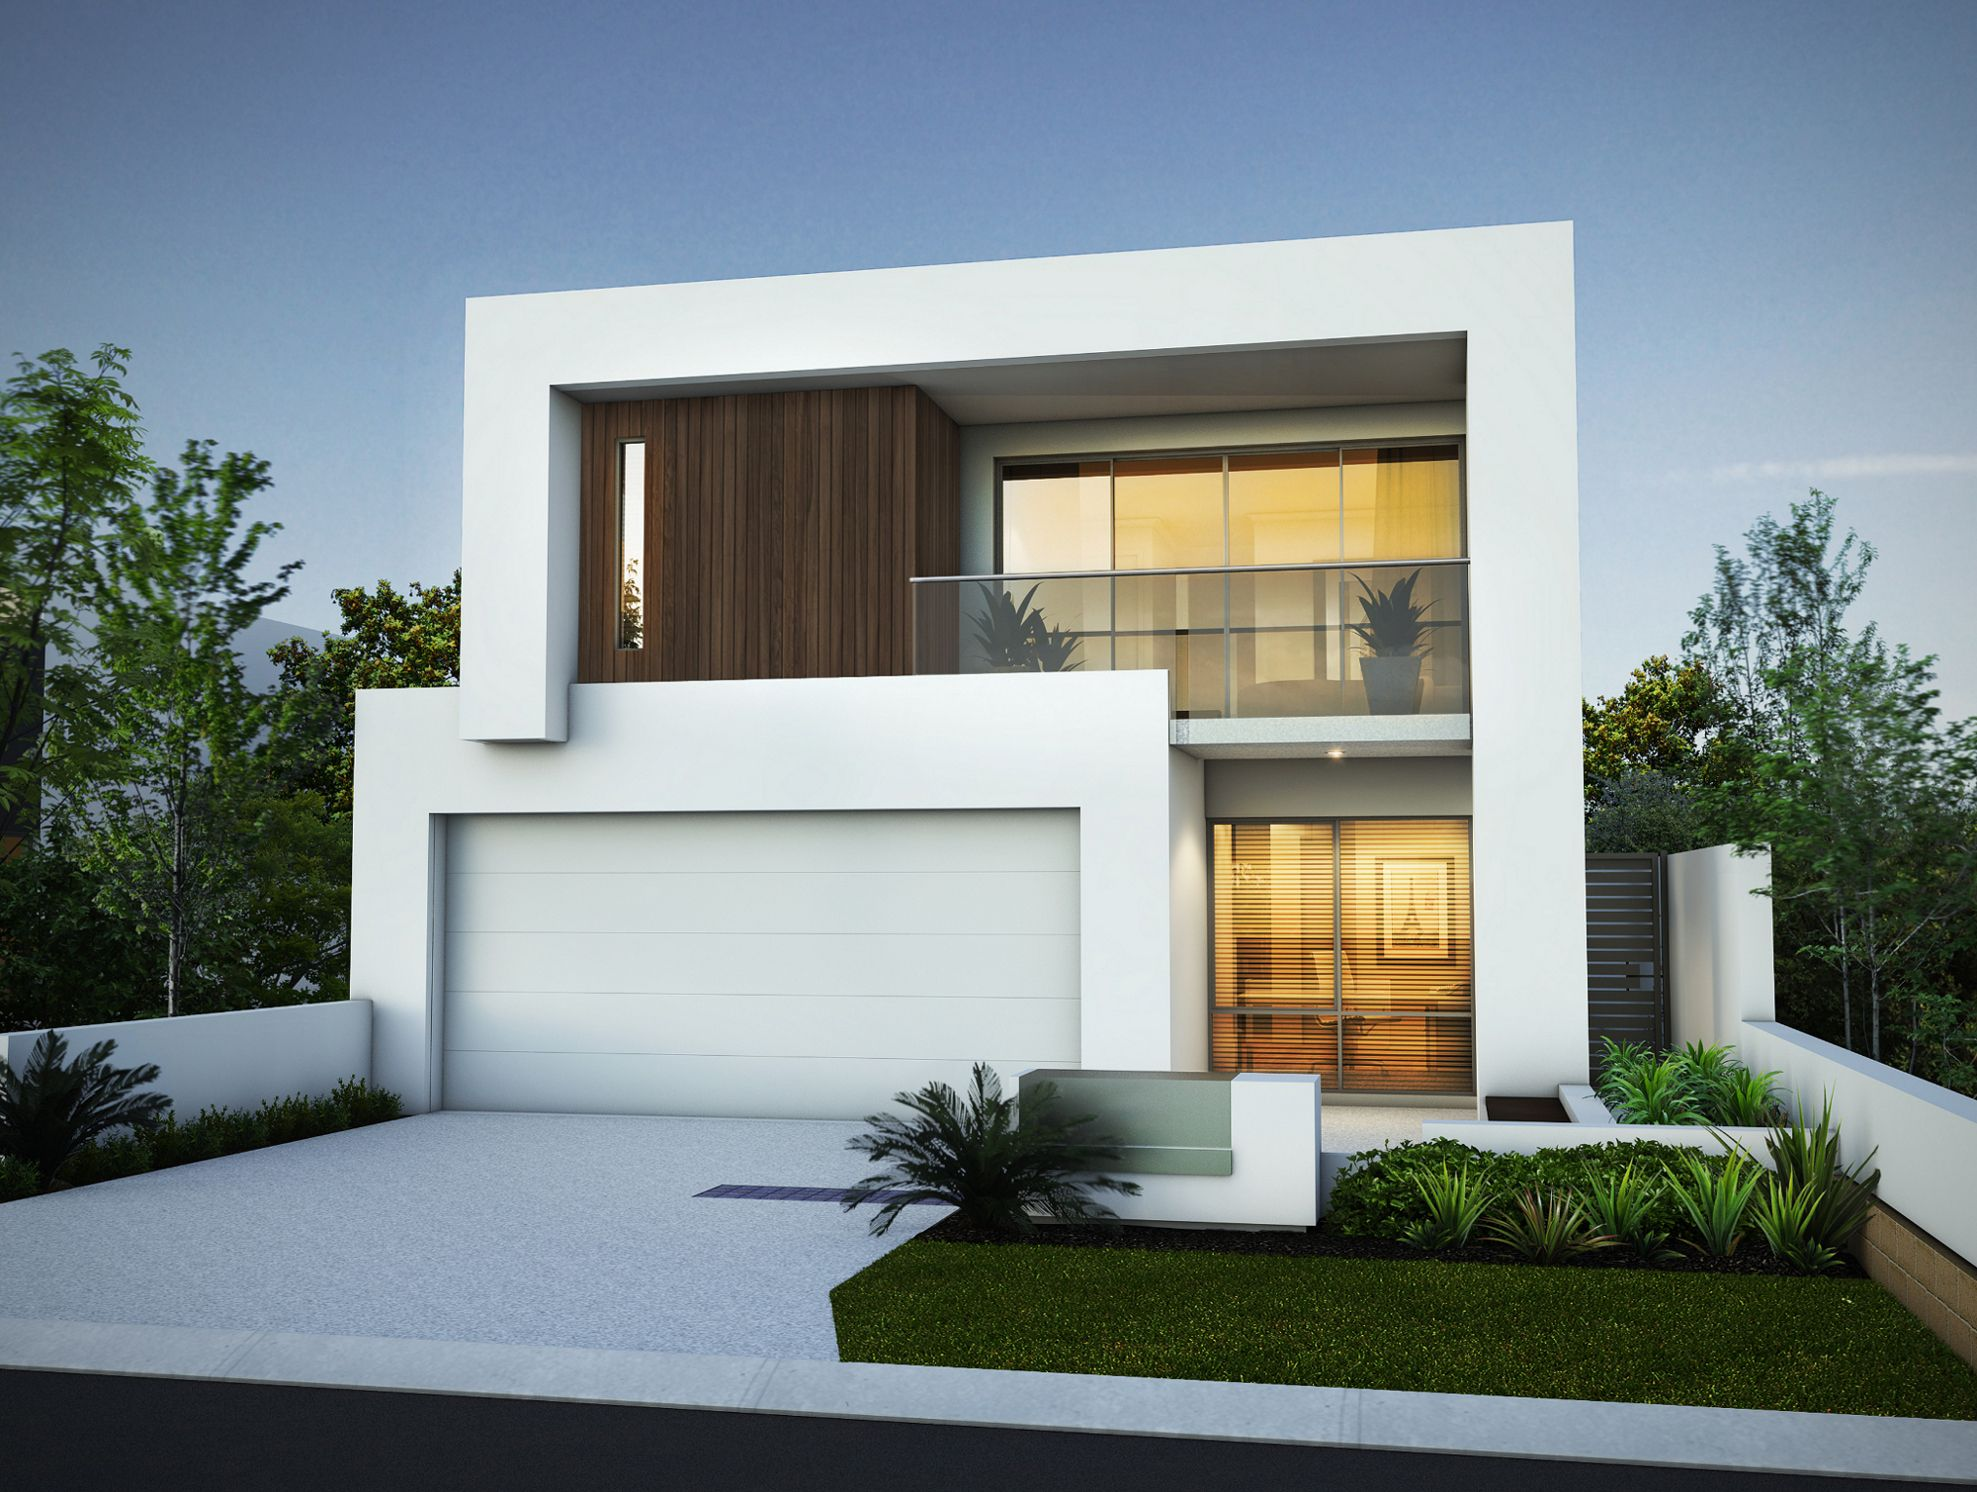 Modern house design for 200 square meter lot Modern square house